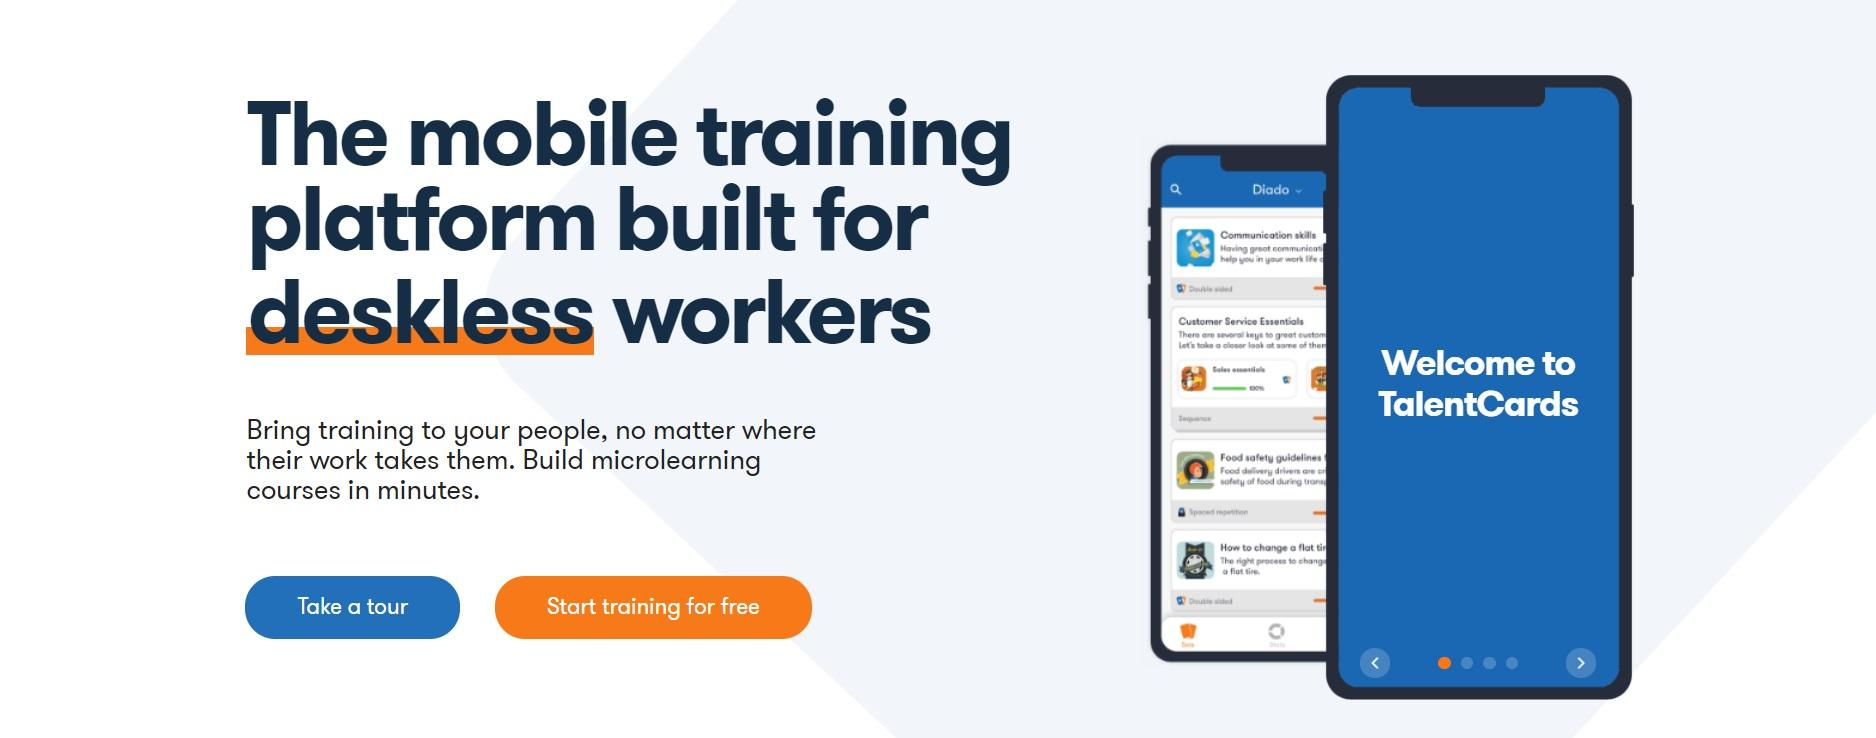 TalentCards brings training to anyone anywhere